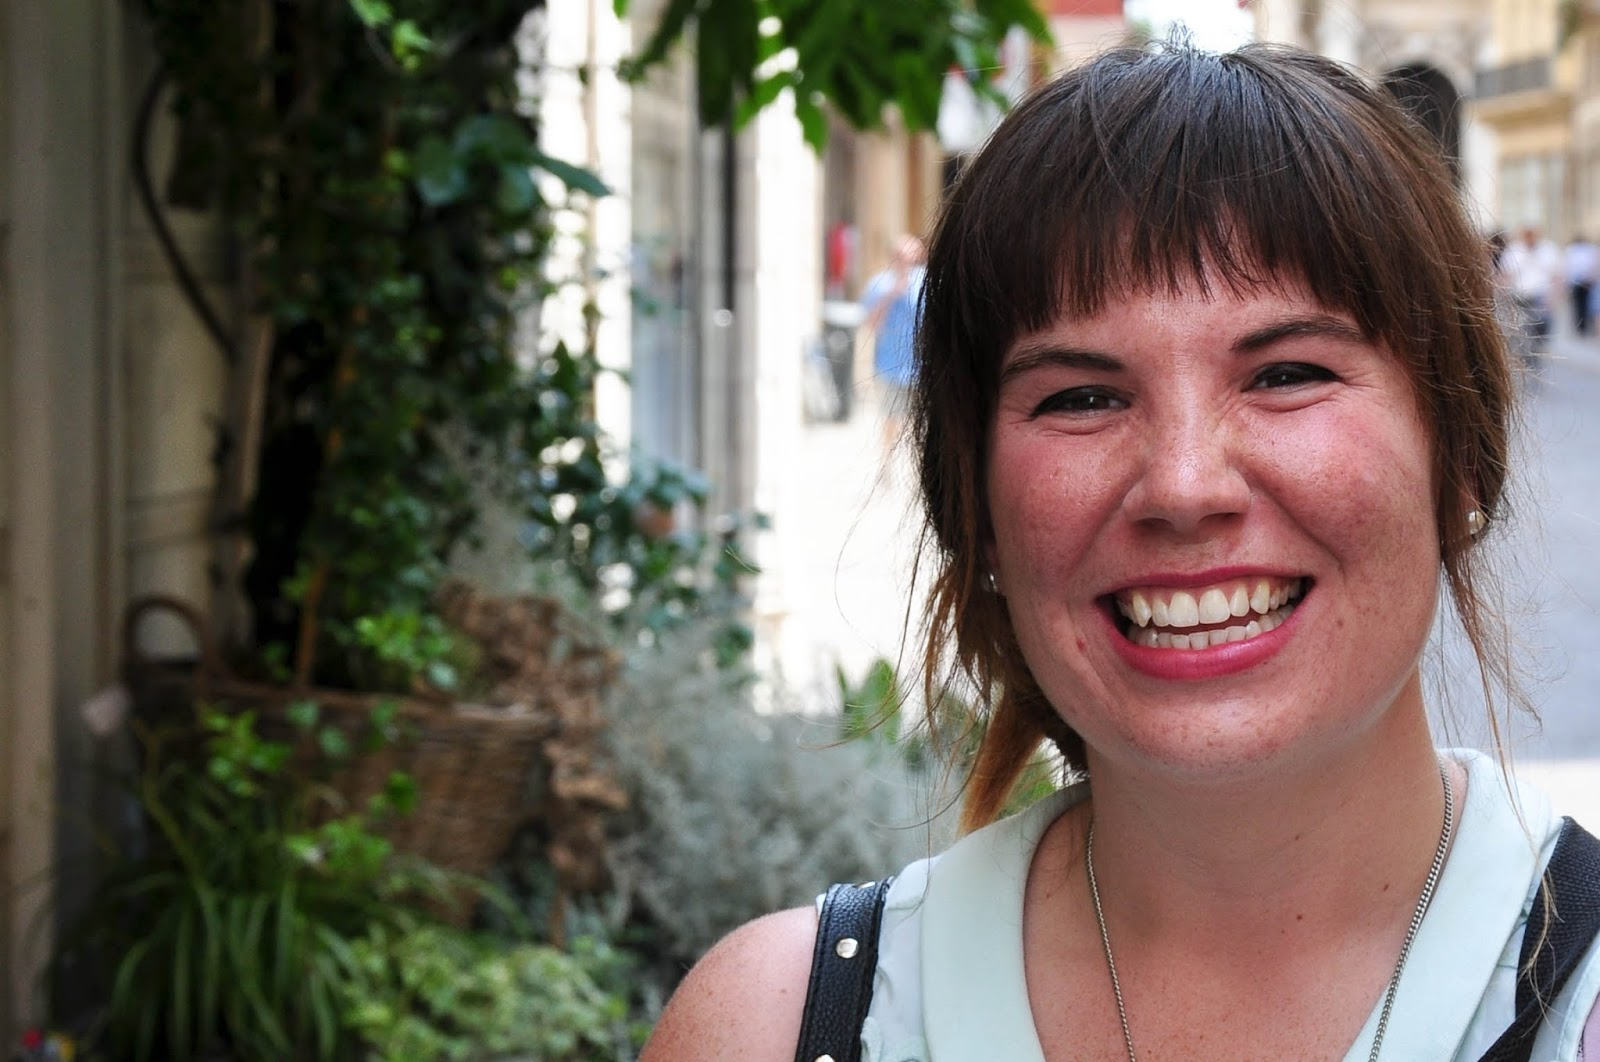 Katie Currid, US photojournalist and blogger, Corso Palladio, Vicenza, Italy